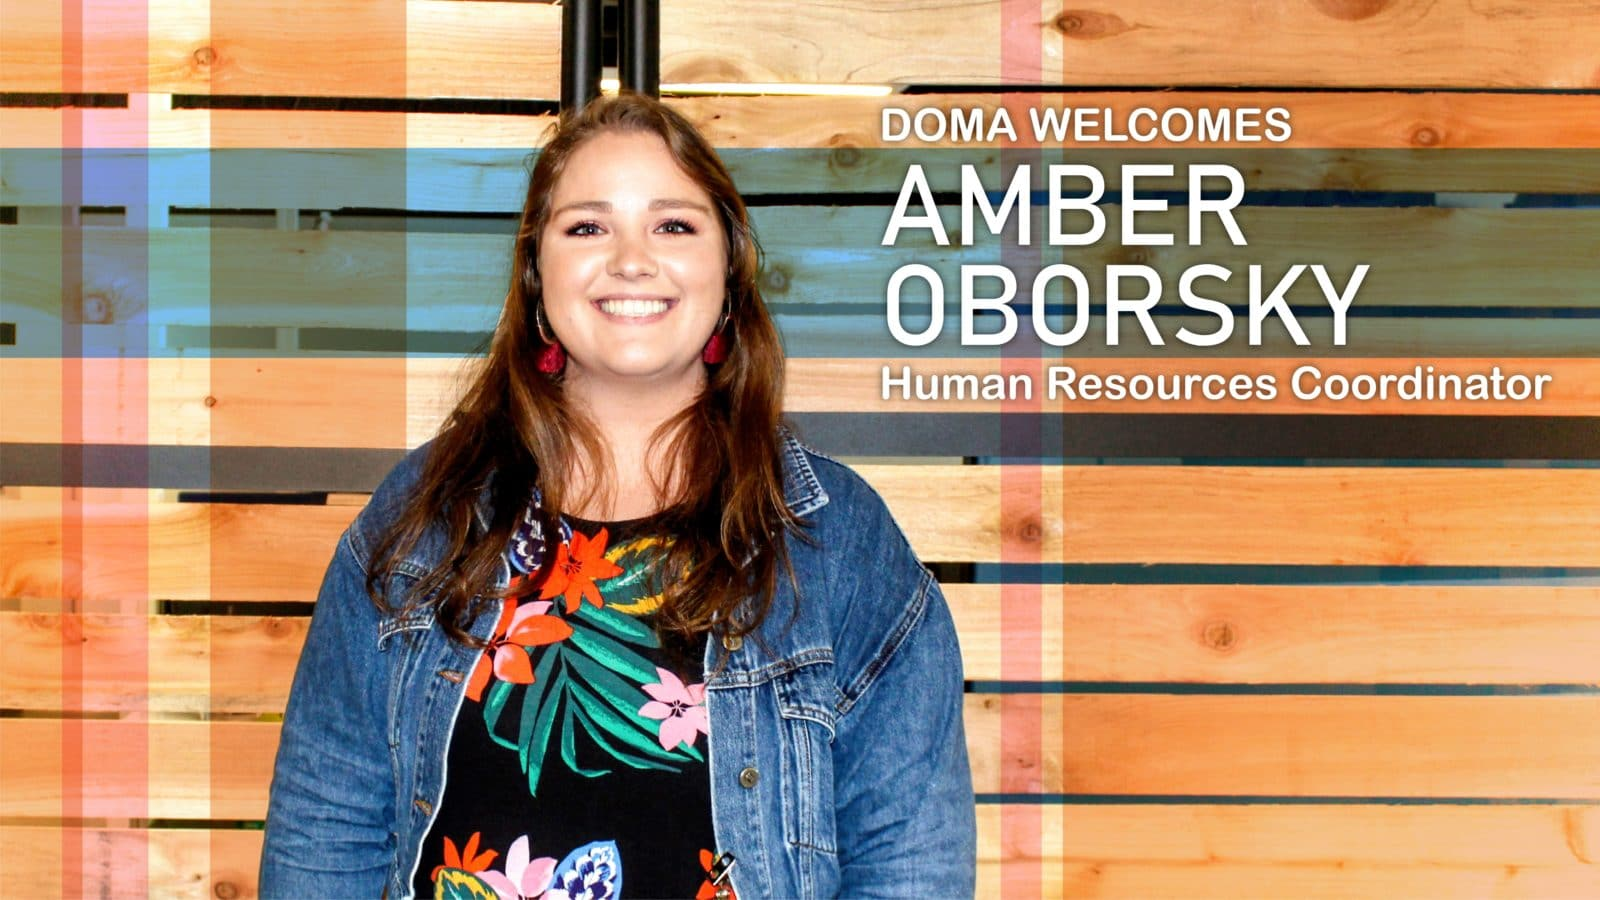 New Human Resources Coordinator Amber Oborsky